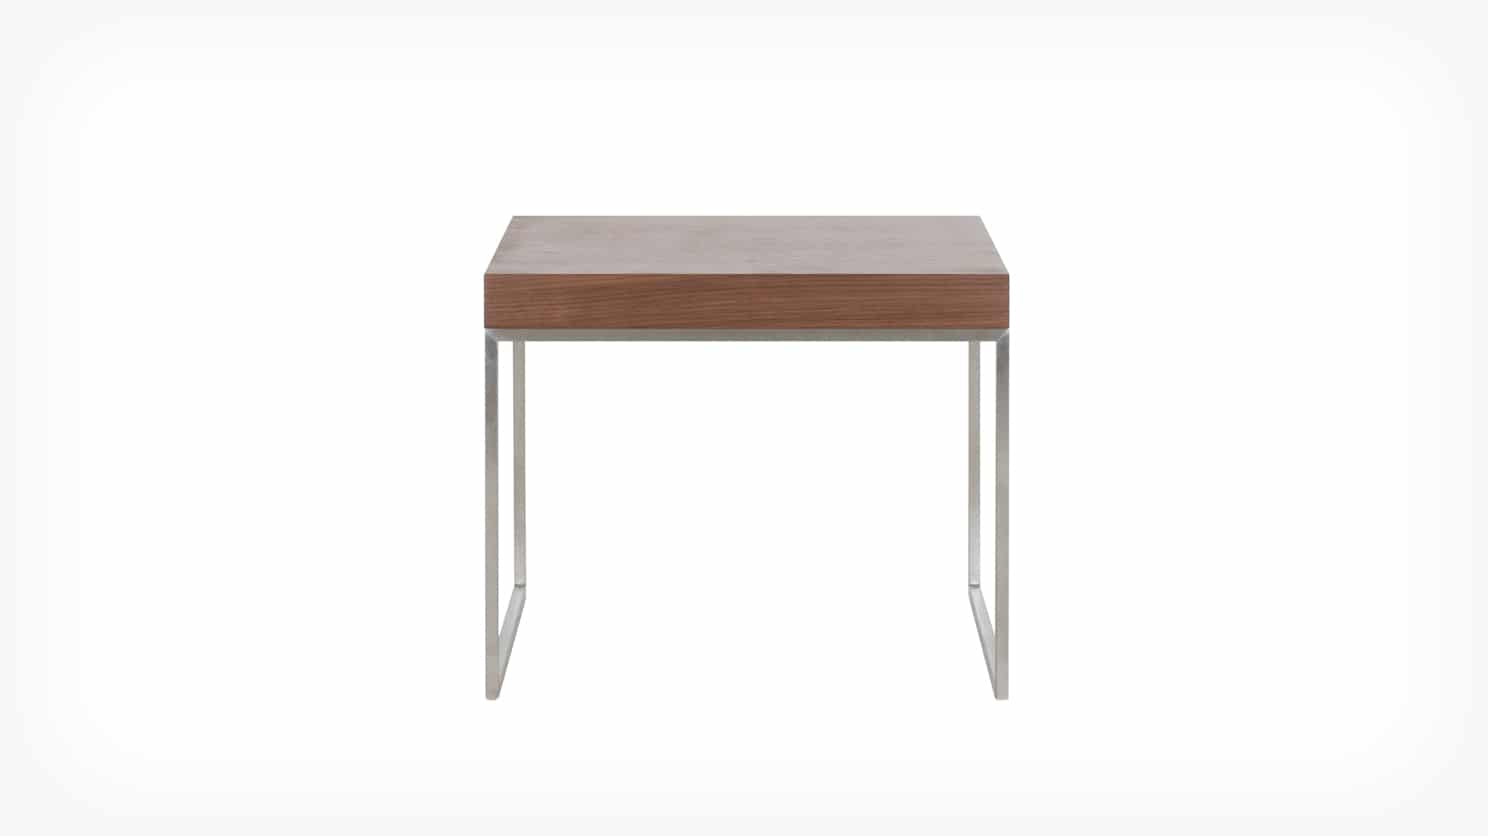 3020 043 13 1 end tables scout square end table side